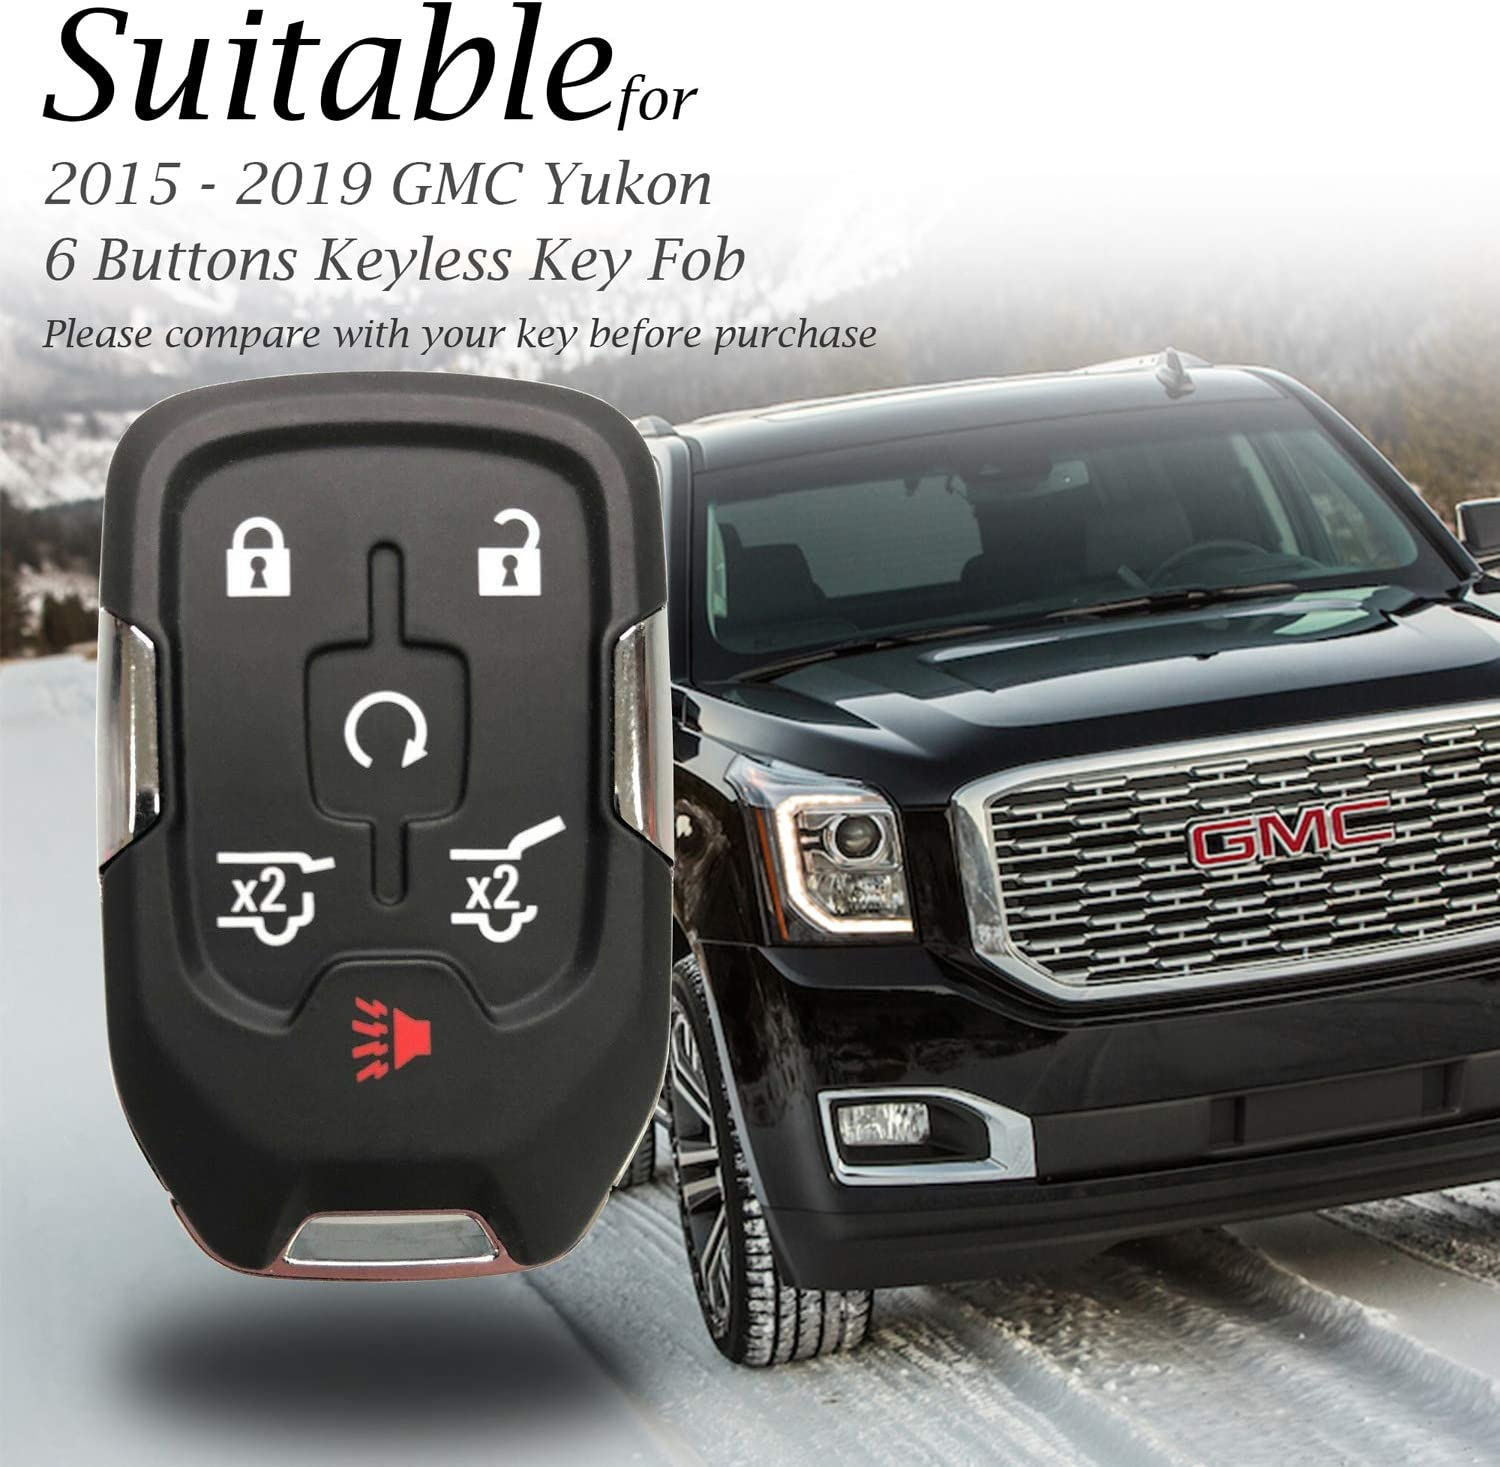 Yukon Denali 6-Button, Black Vitodeco Genuine Leather Smart Key Fob Case Cover Protector with Leather Key Chain for 2015-2019 GMC Yukon Yukon XL